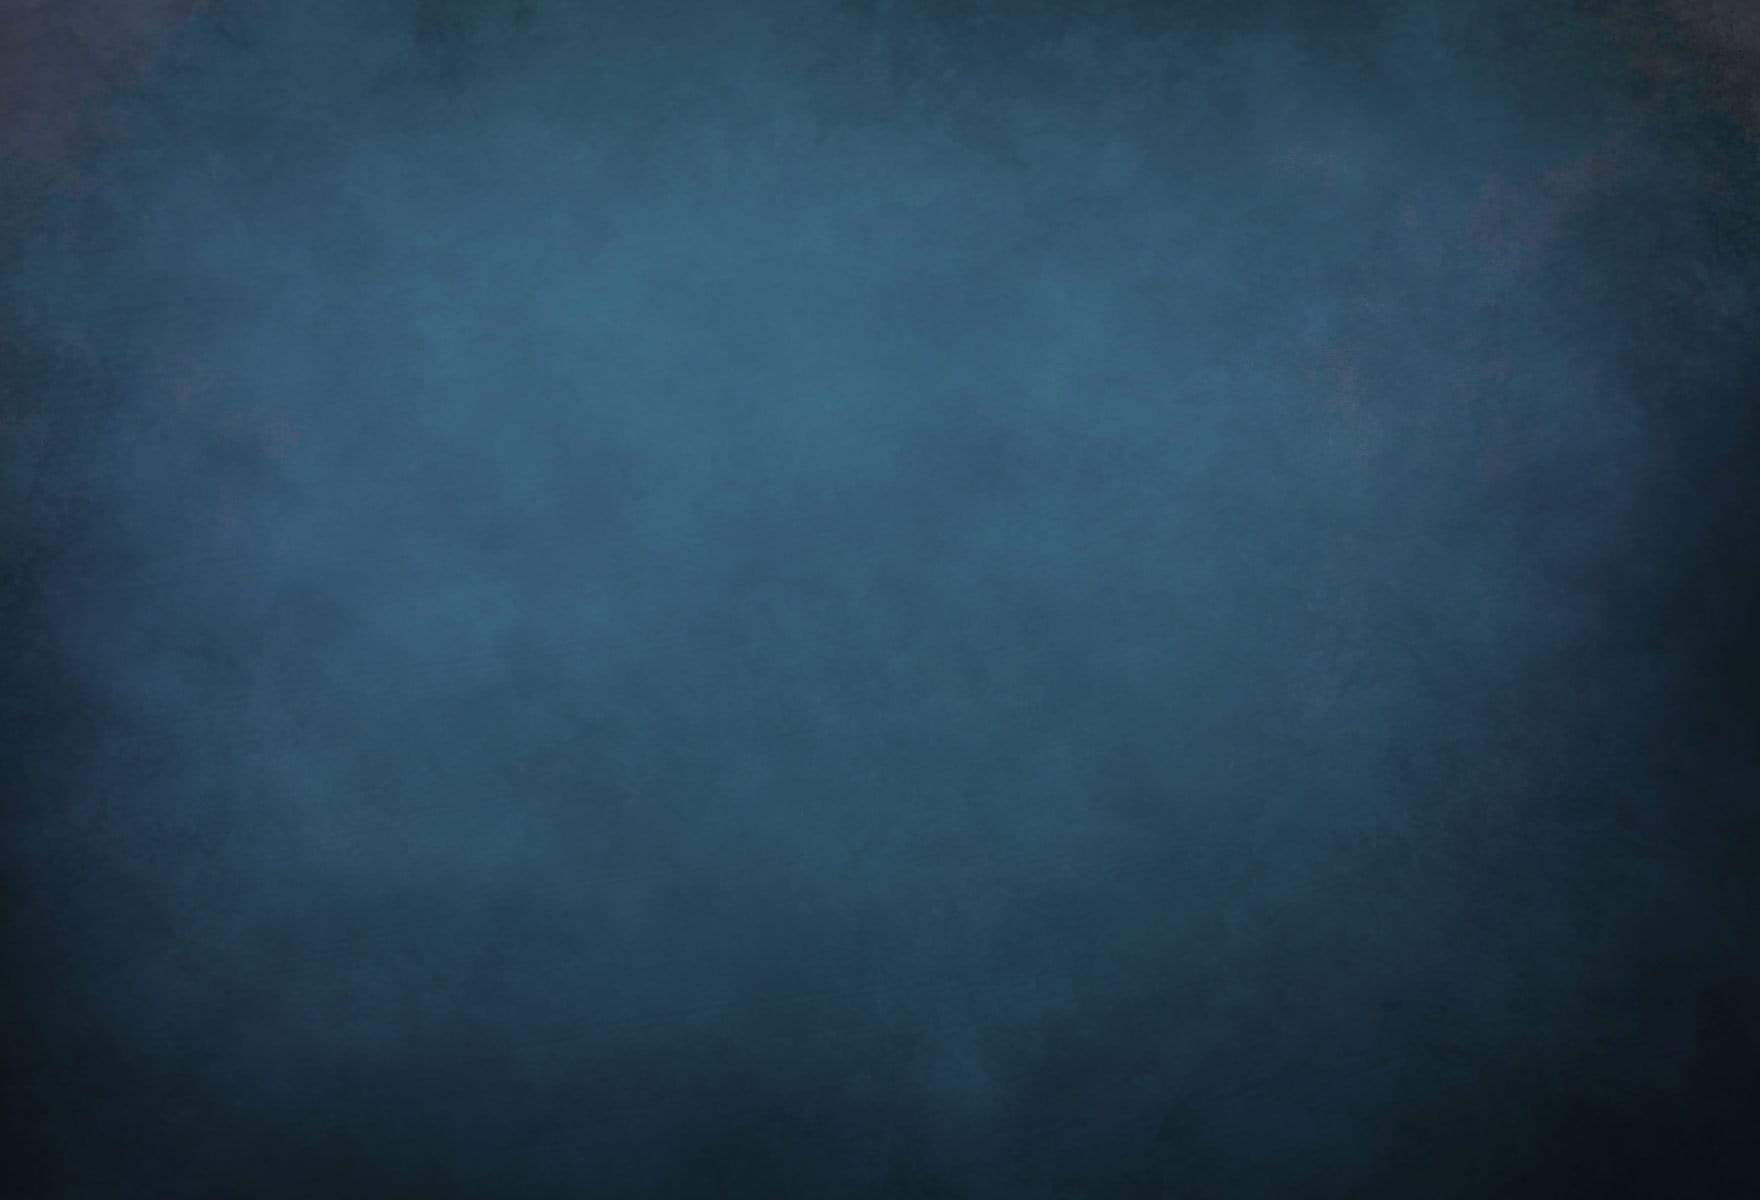 Load image into Gallery viewer, Katebackdrop:Kate Dark Blue Abstract Texture Backdrop for photography